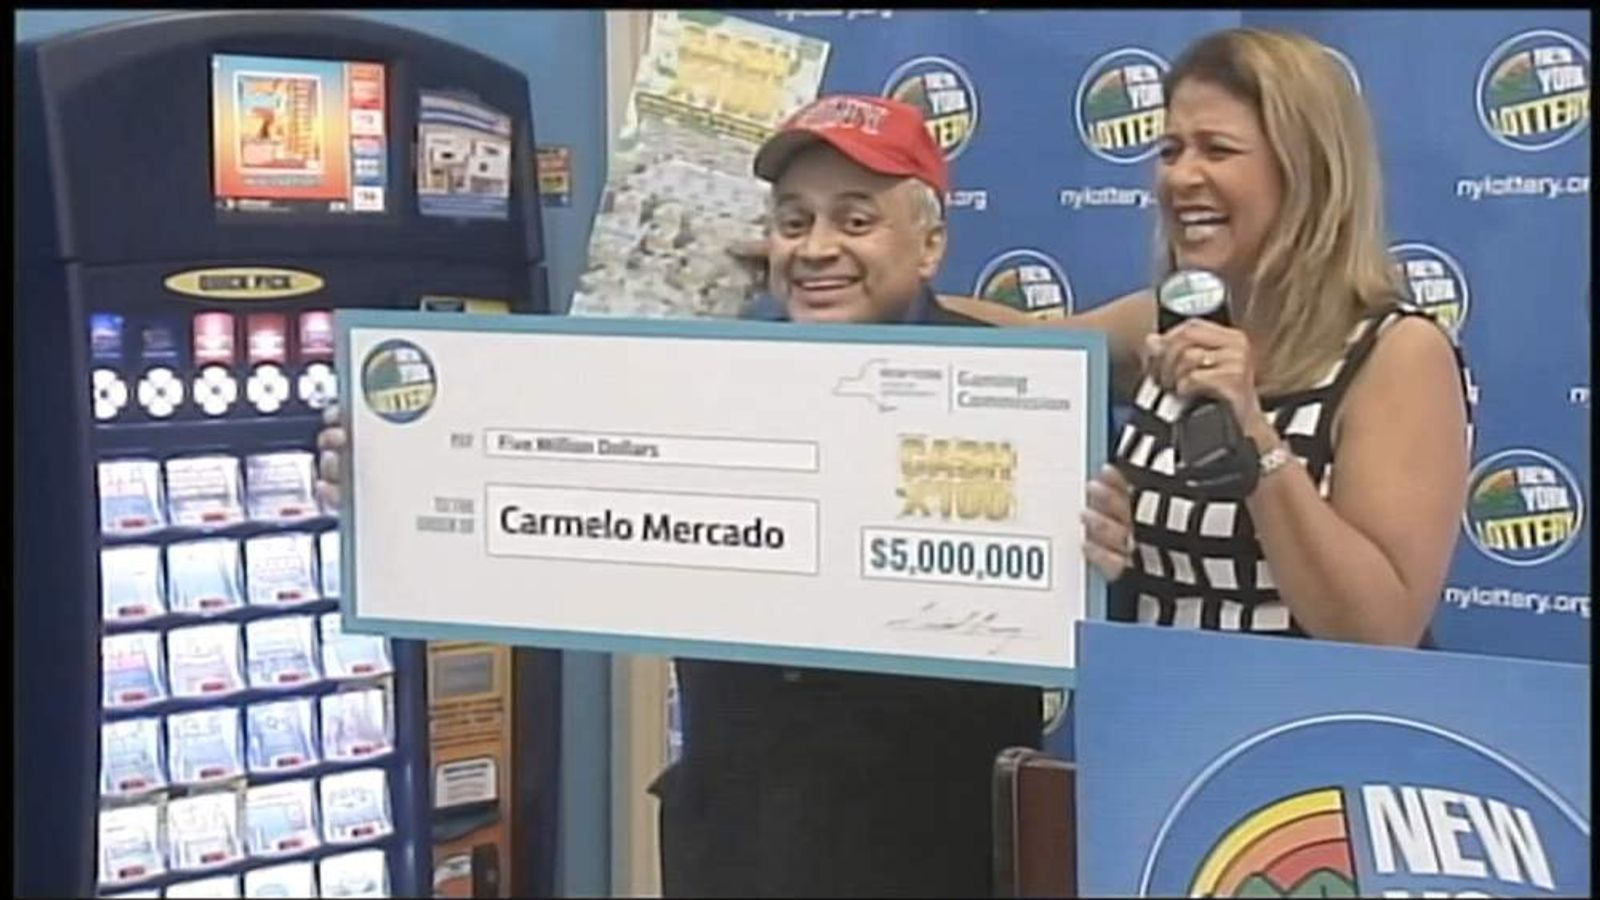 9/11 firefighter Carmelo Mercado wins lottery